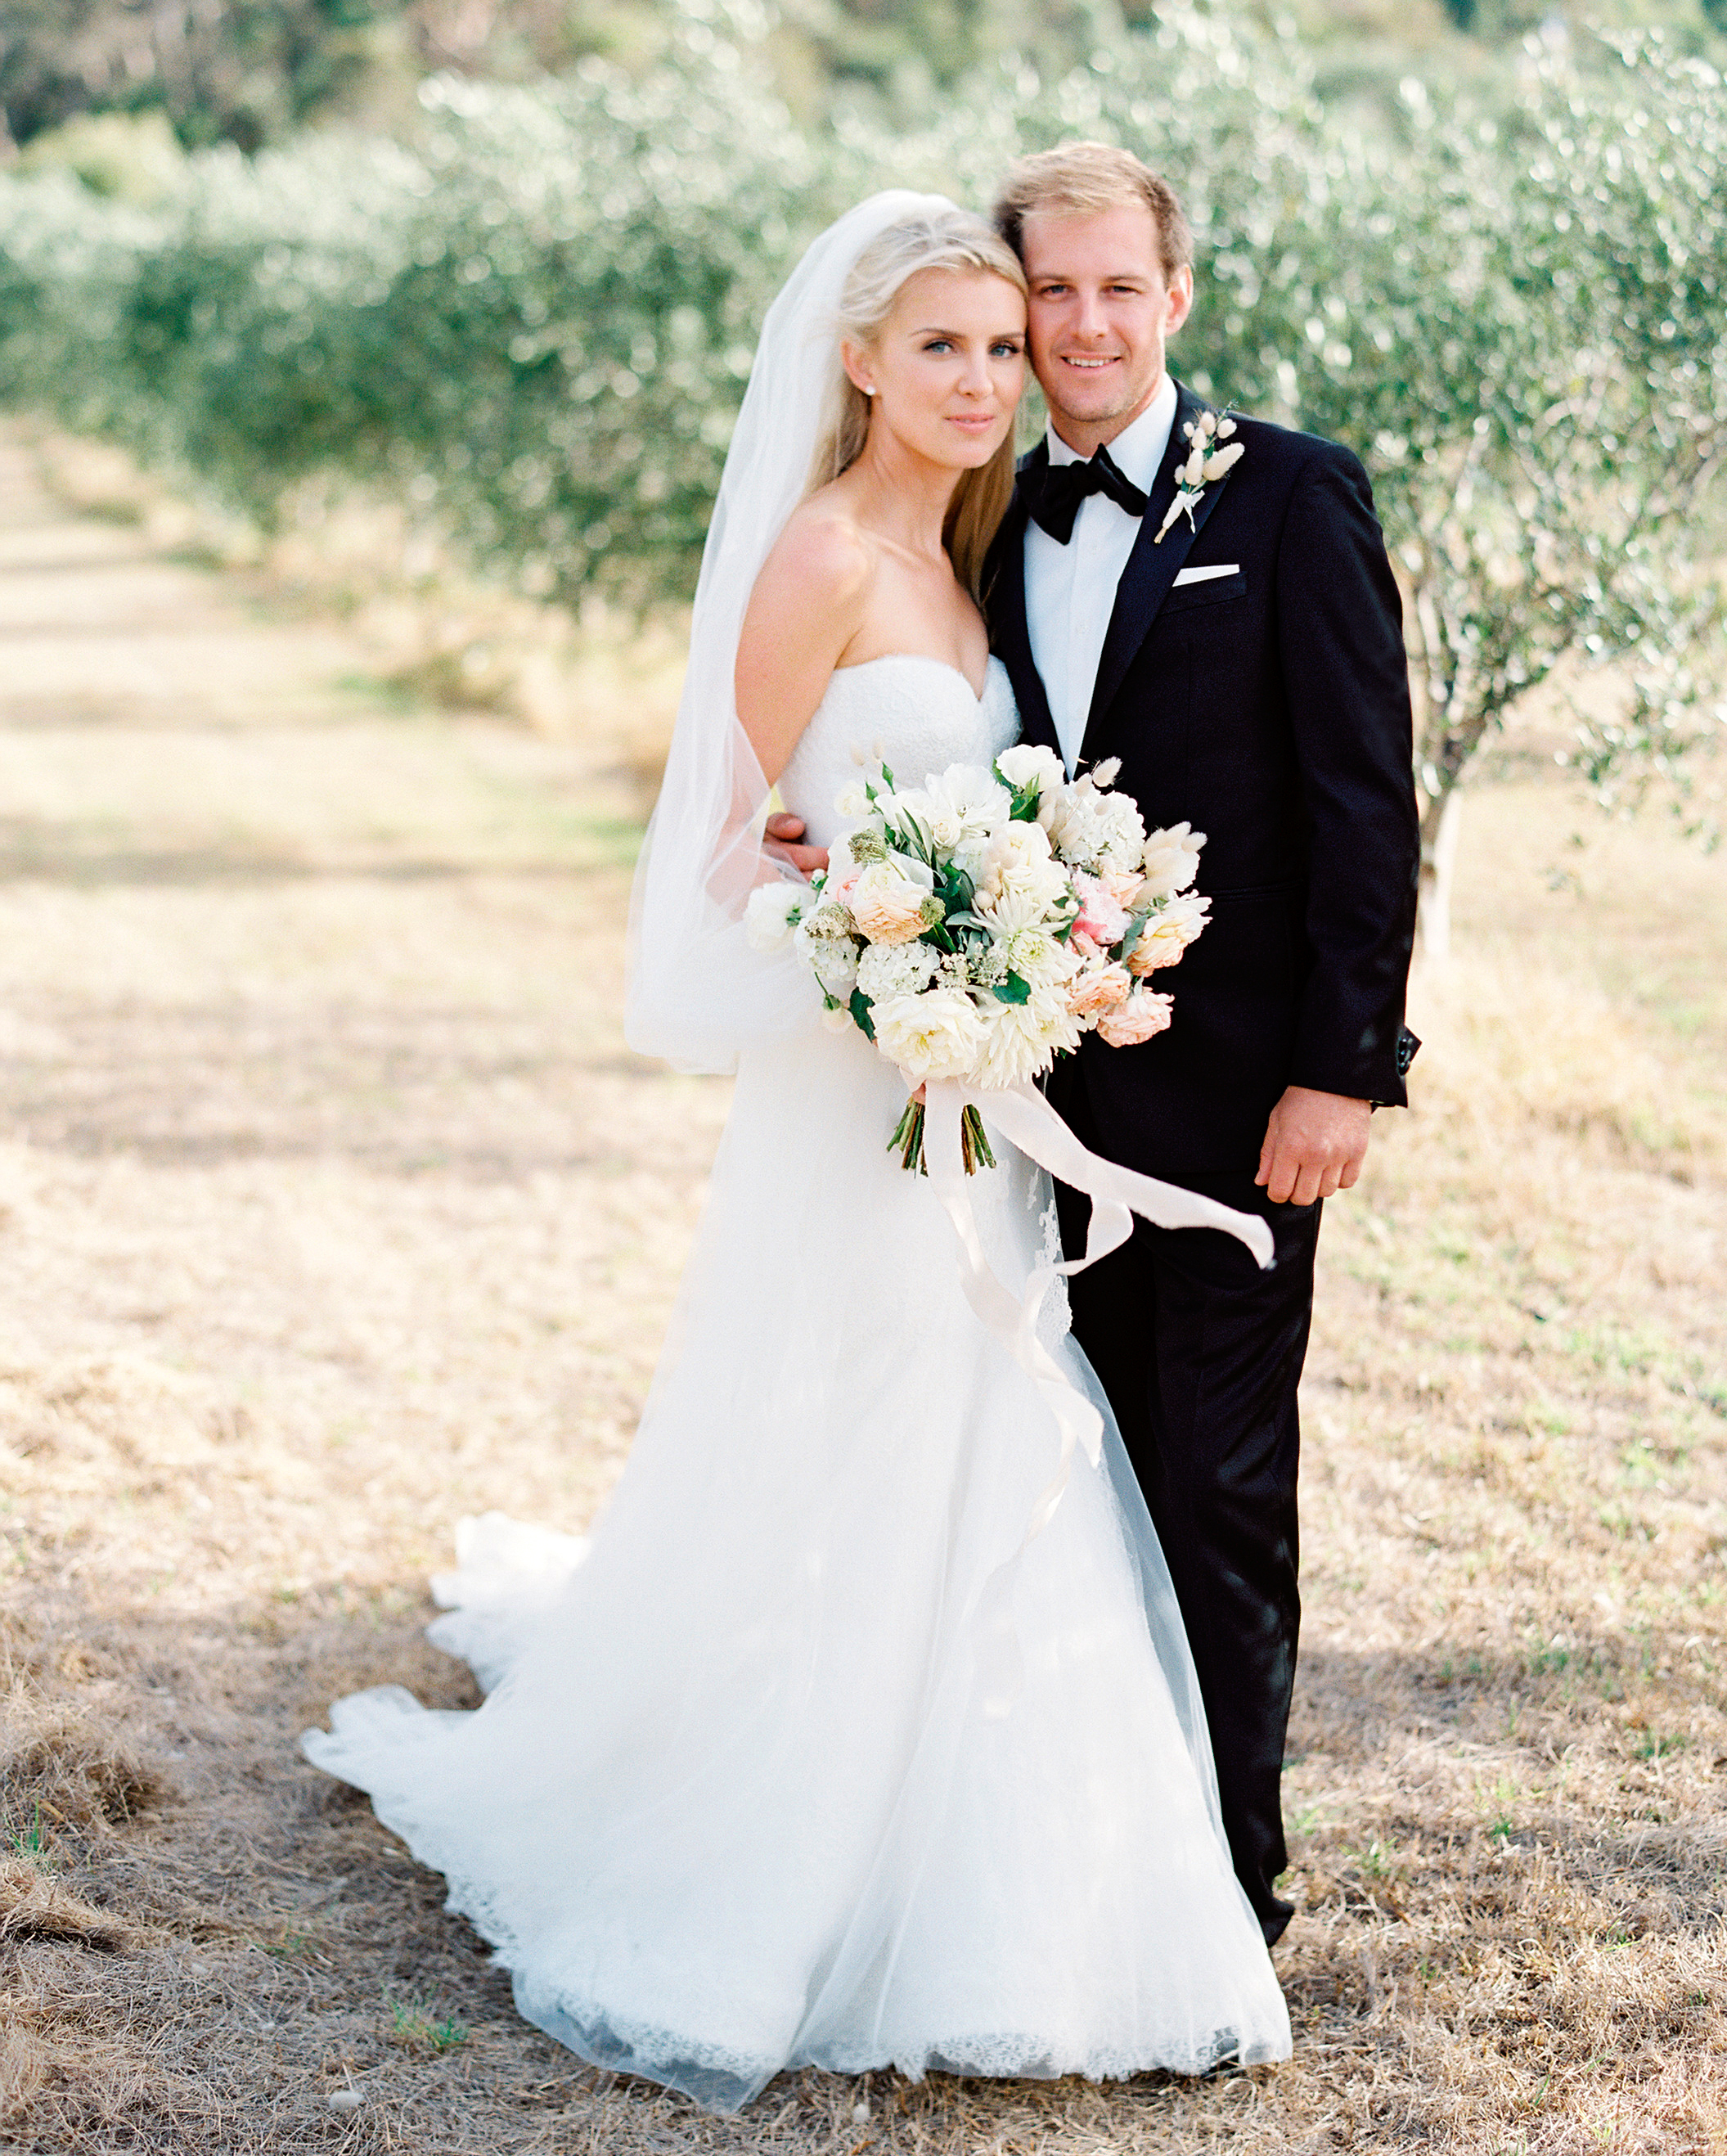 Jemma And Michael's Romantic Black-Tie Wedding In An